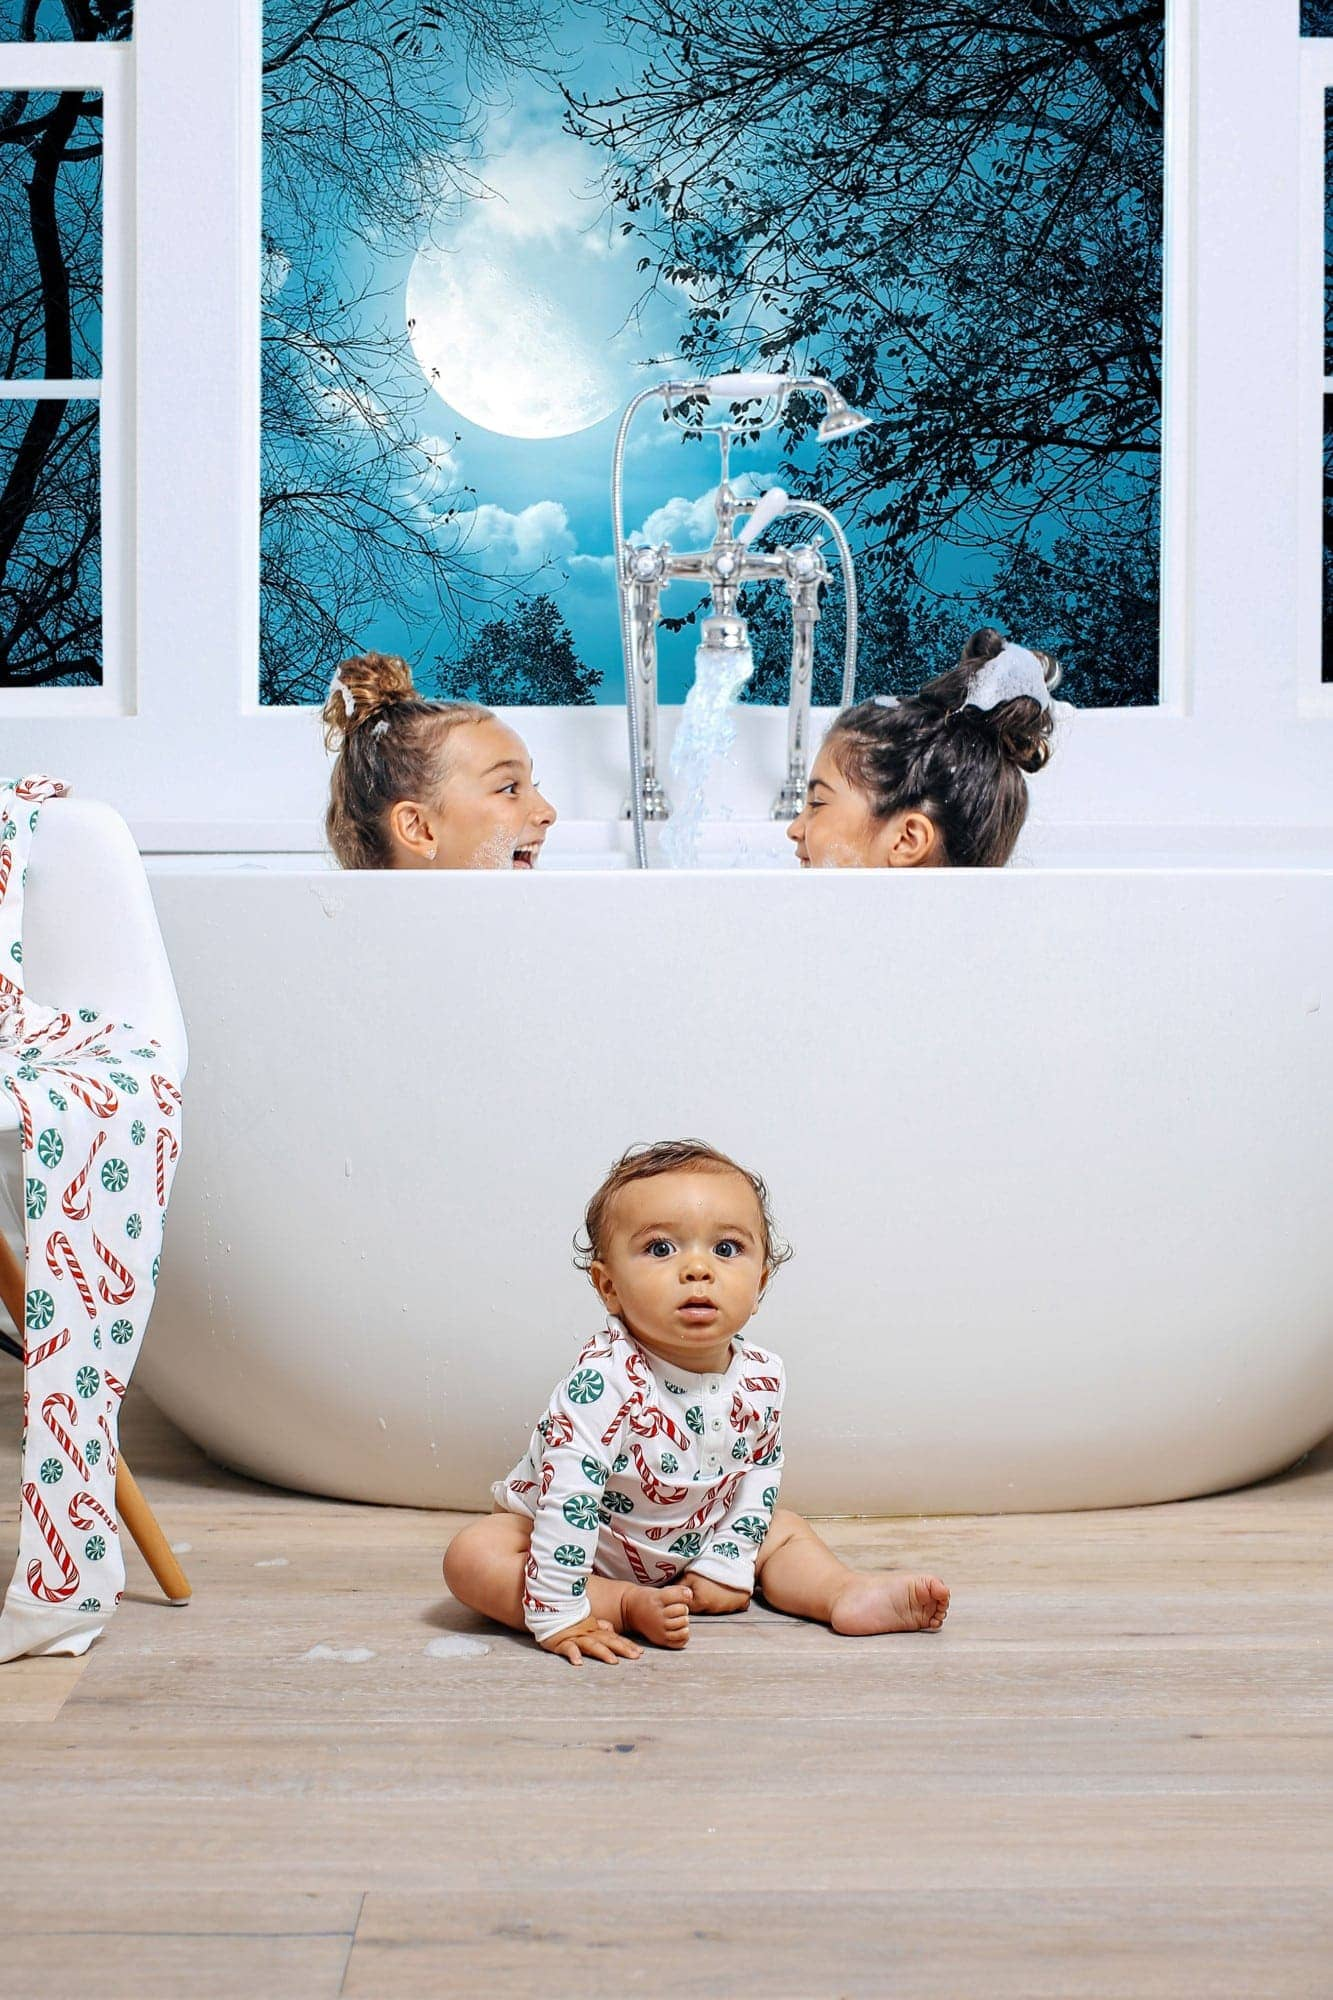 girls in bathtub with baby sitting outside